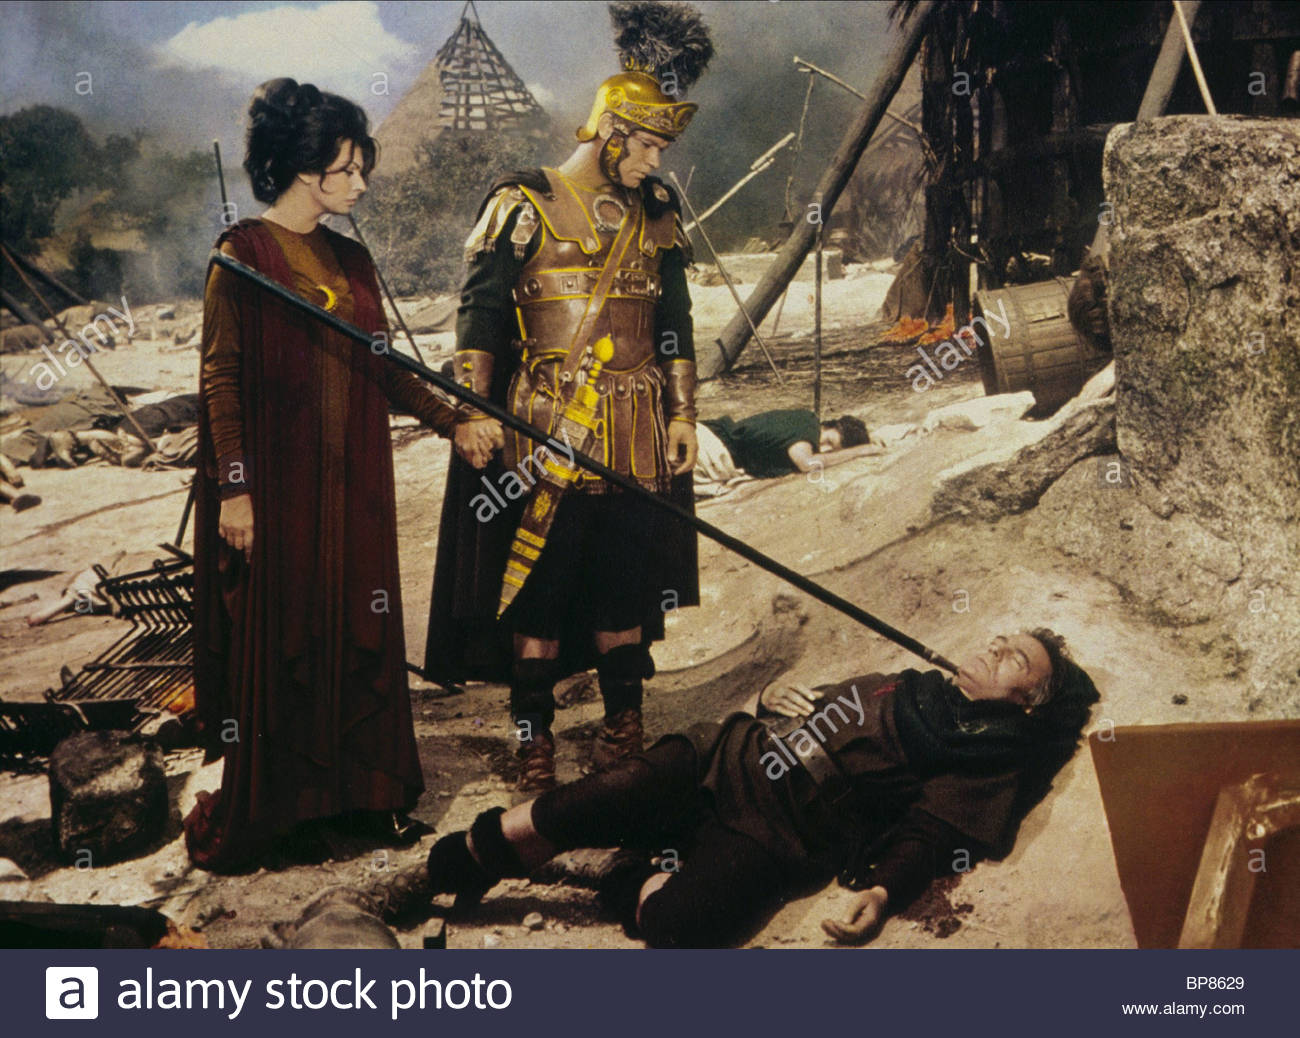 the fall of the roman empire The date of the fall of the roman empire is hard to pinpoint when emperor romulus was deposed in 476 ad and replaced by odoacer, the first king of italy.